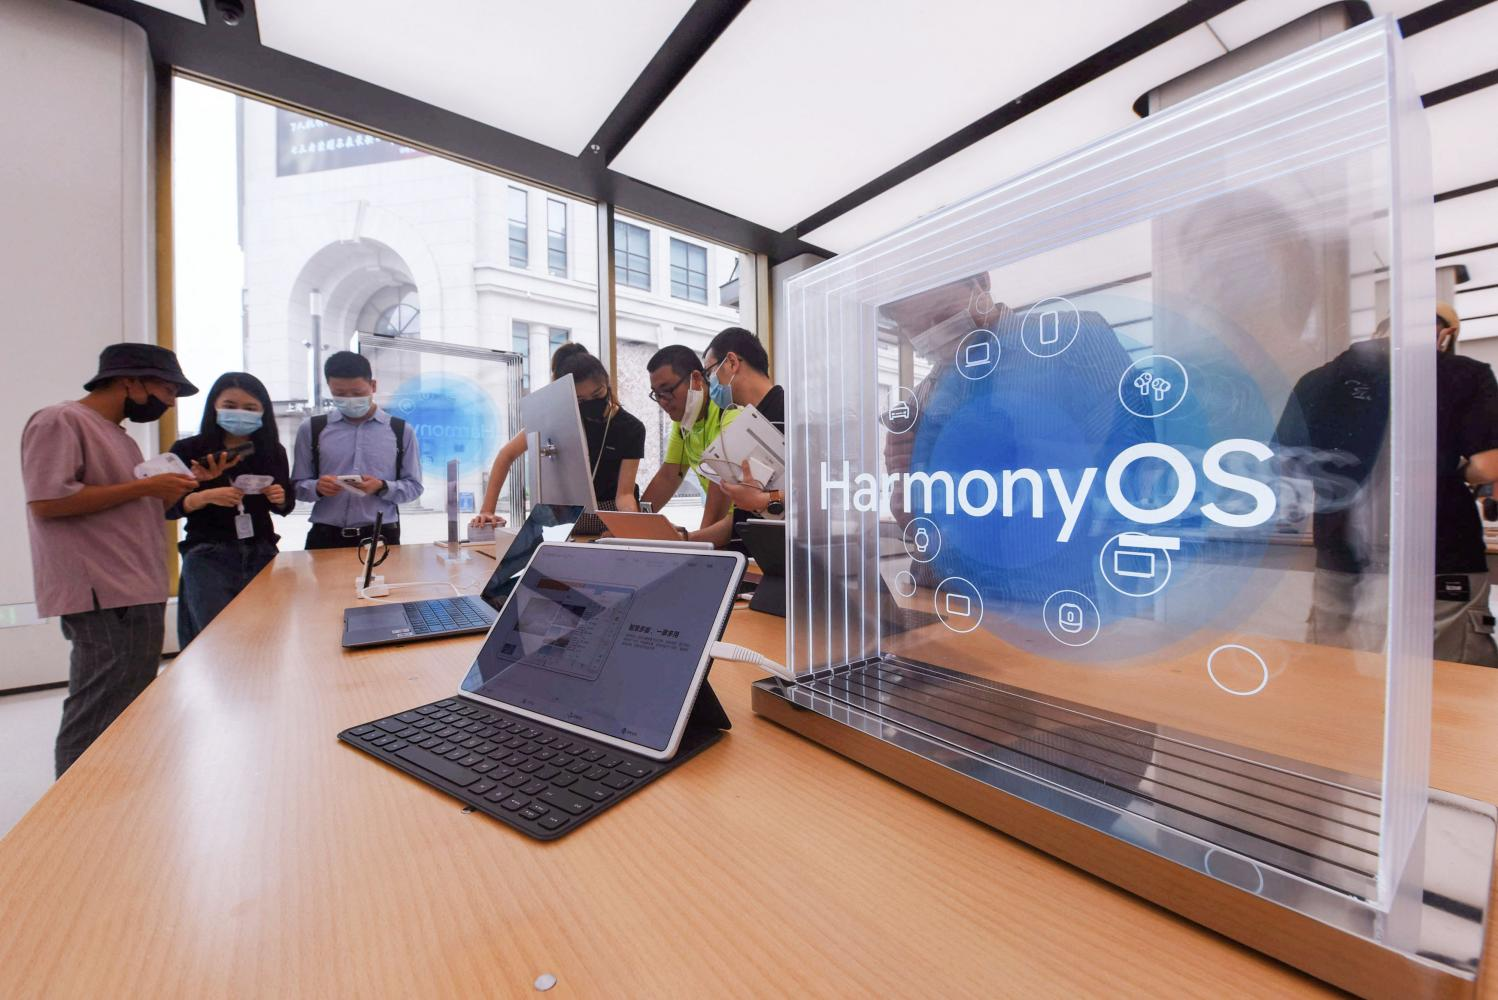 People try Huawei products with the Harmony operating system at a Huawei store in Shanghai on Thursday. (STR/AFP photo)